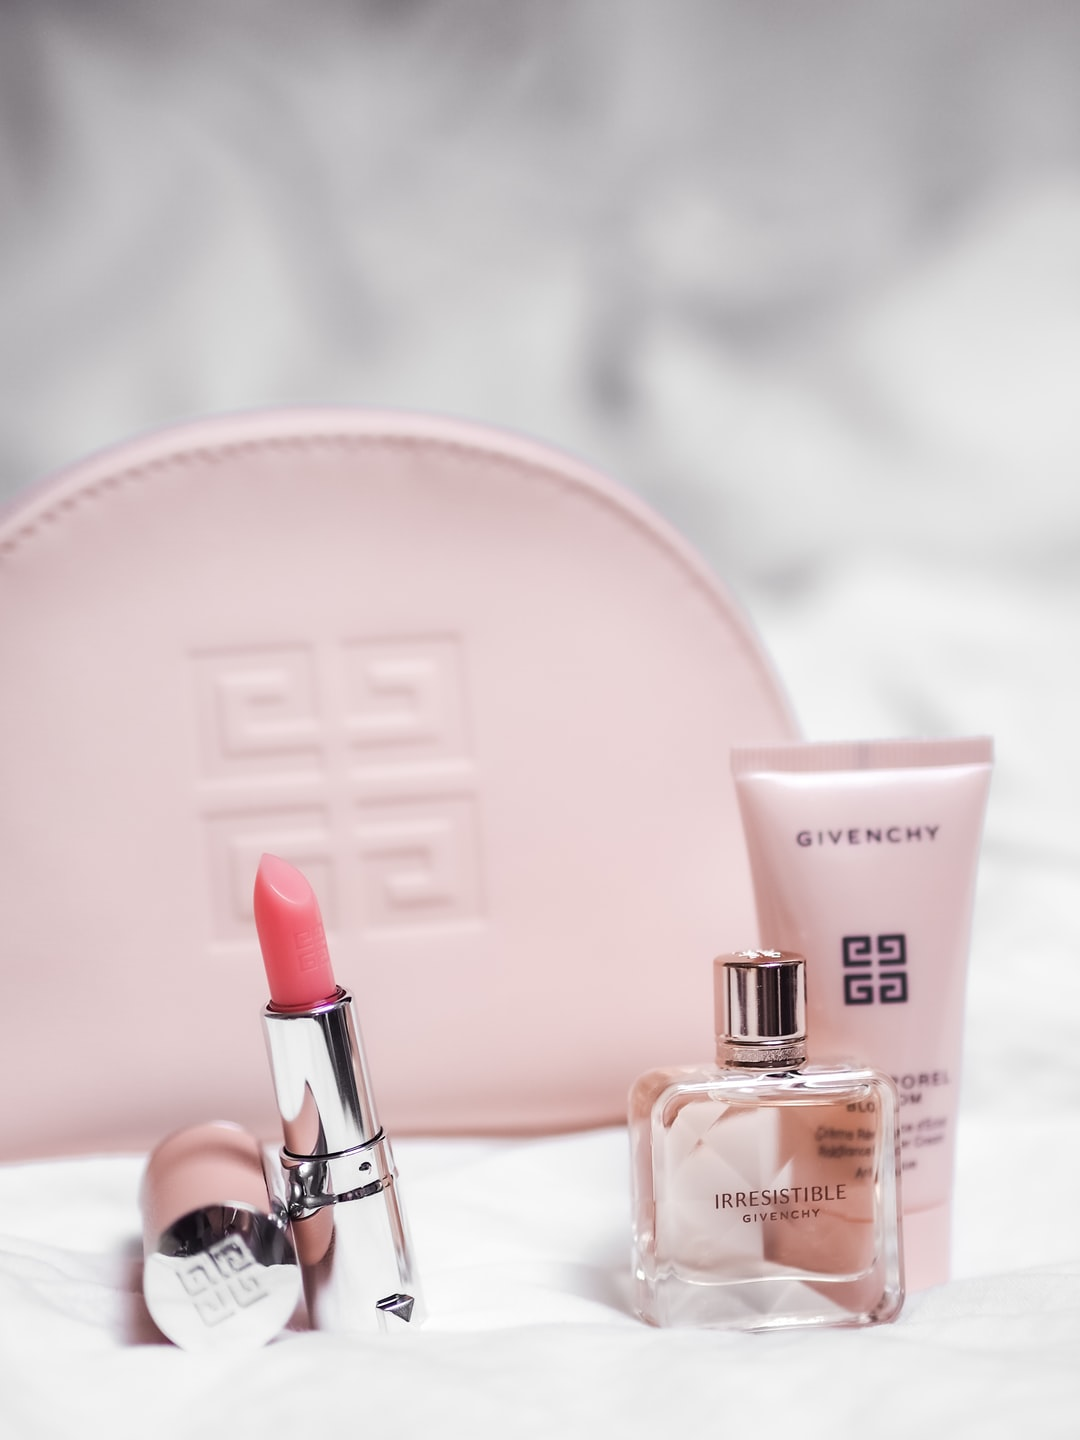 #IrresistibleIsYou by @Givenchy @GivenchyBeauty. 💗  Irresistible Perfume, Lipstick and Pouch with logo. Photo by Laura Chouette ©FreeUse2020 (Thanks to MarionnaudAustria)